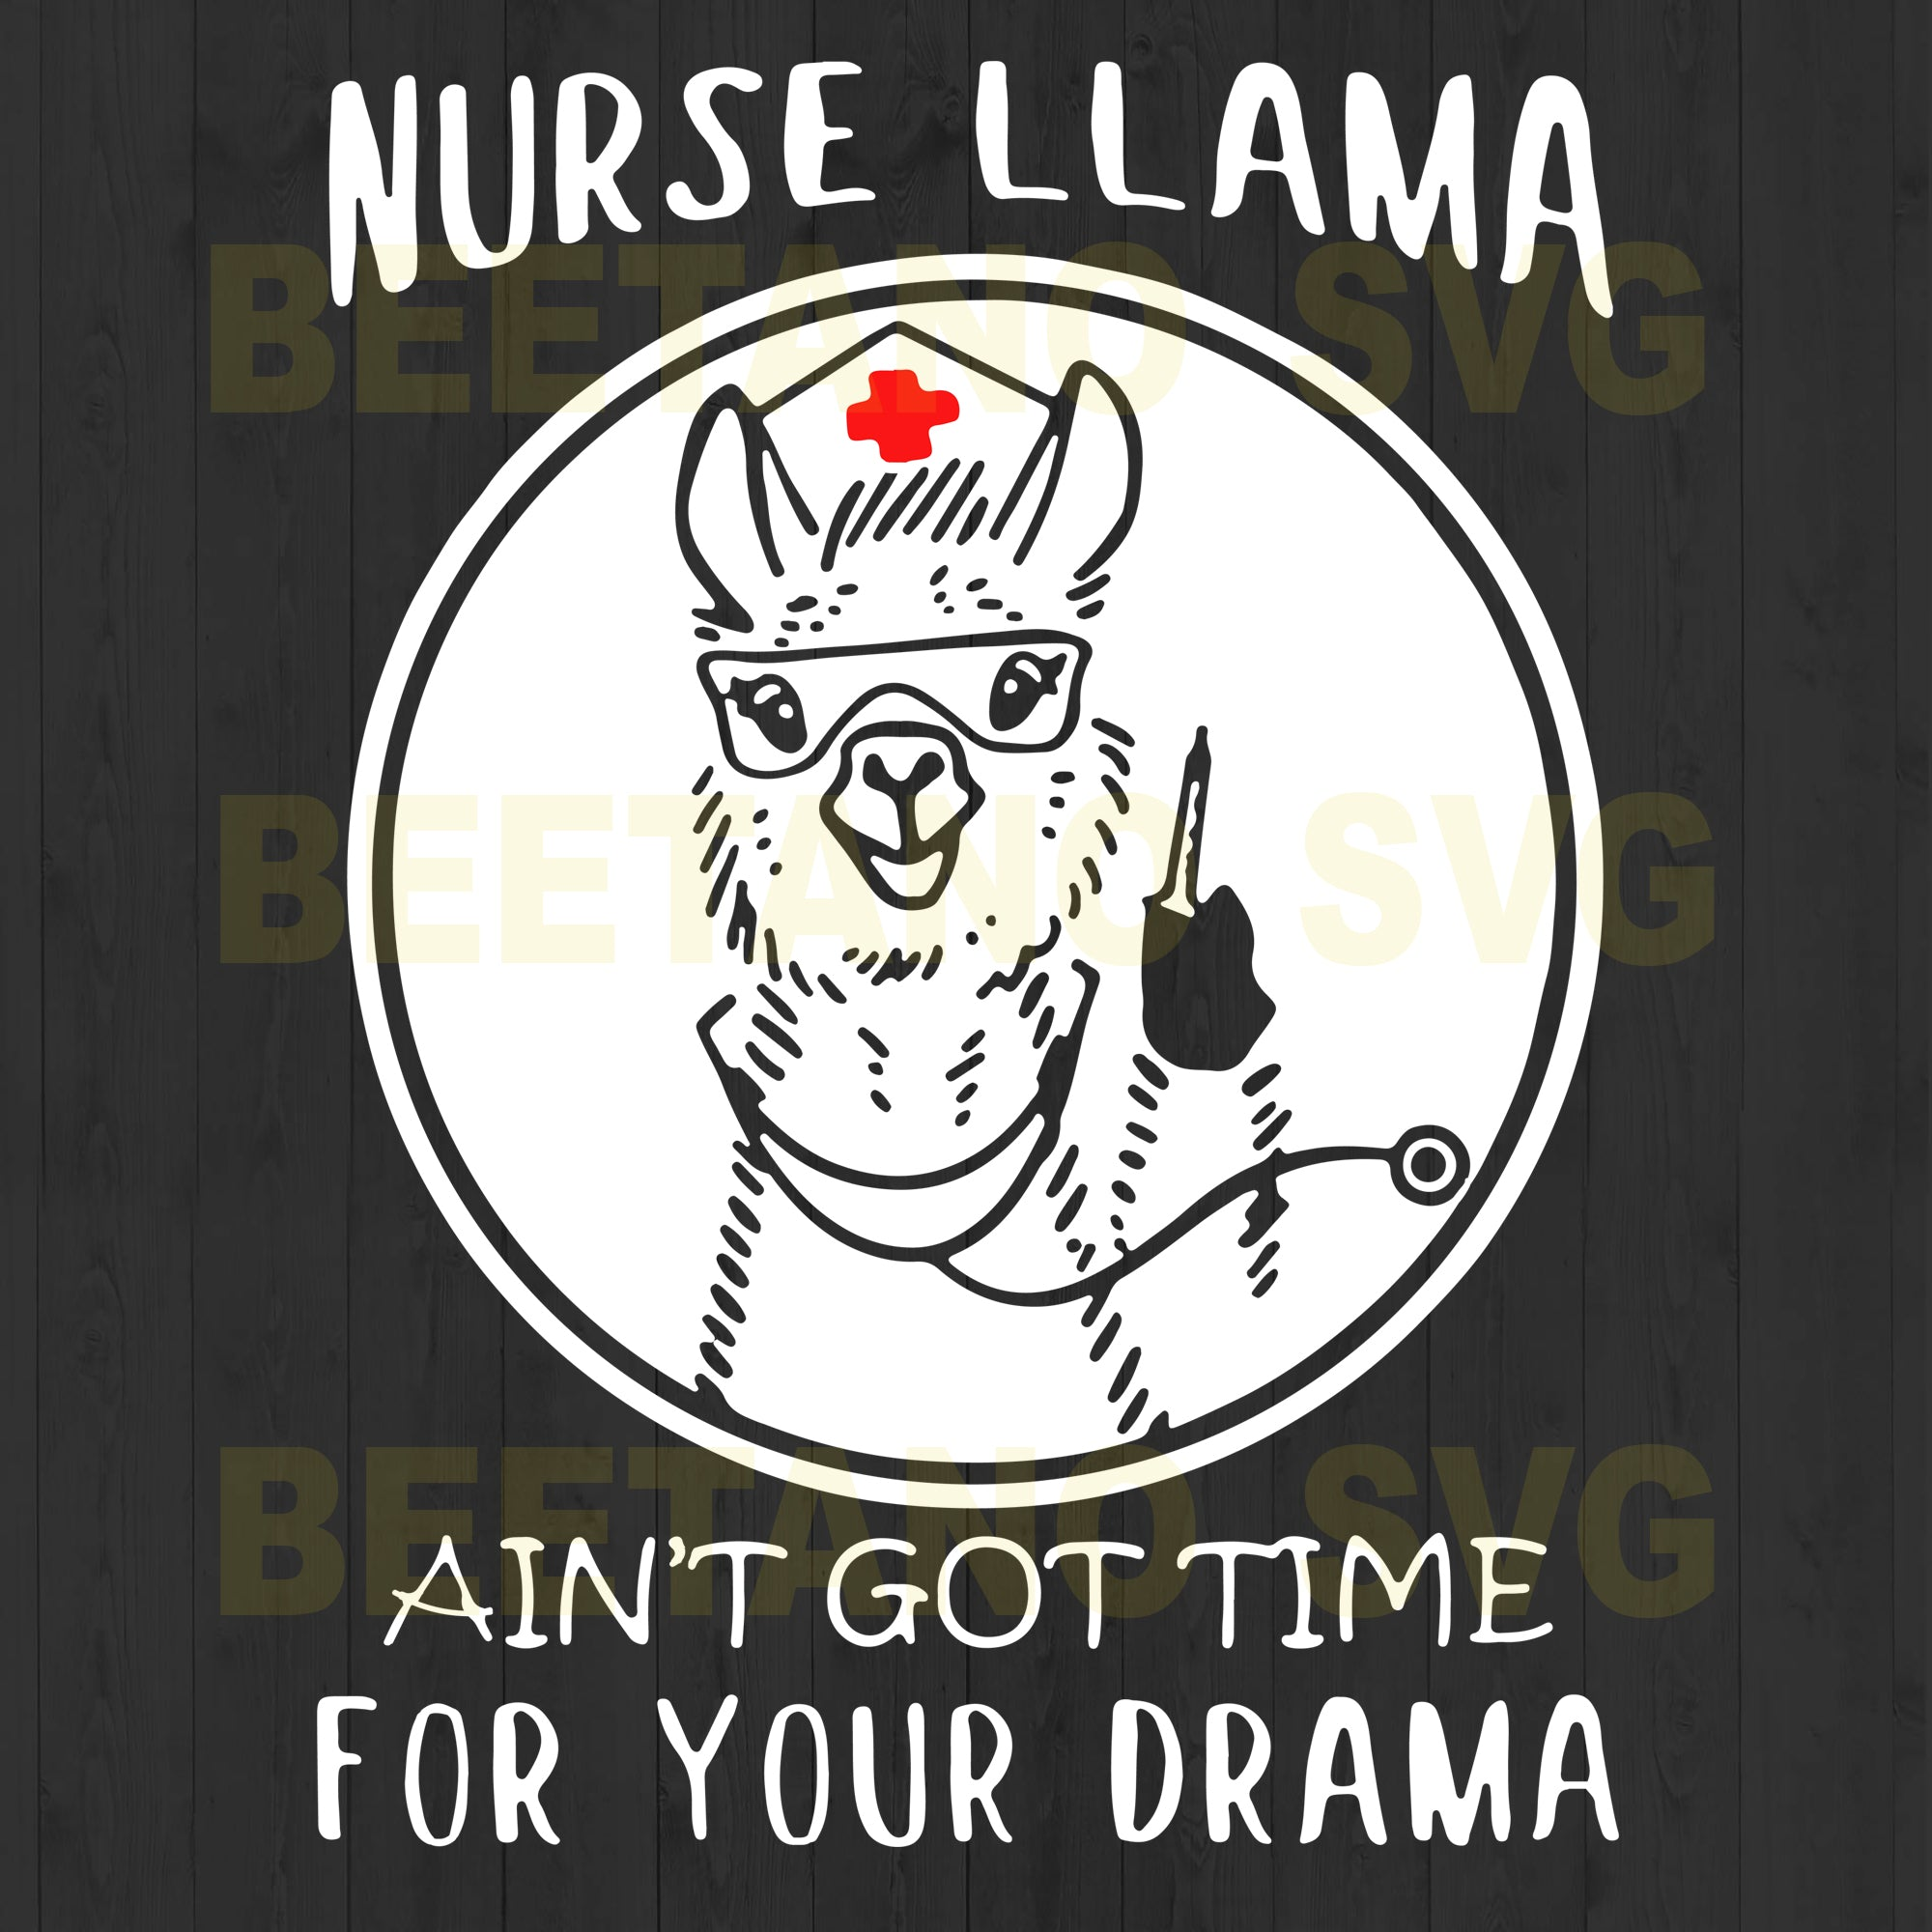 Nurse Llama Ain't Got Time For Your Drama Svg Files, Llama Svg, Nurse Svg For Instant Download